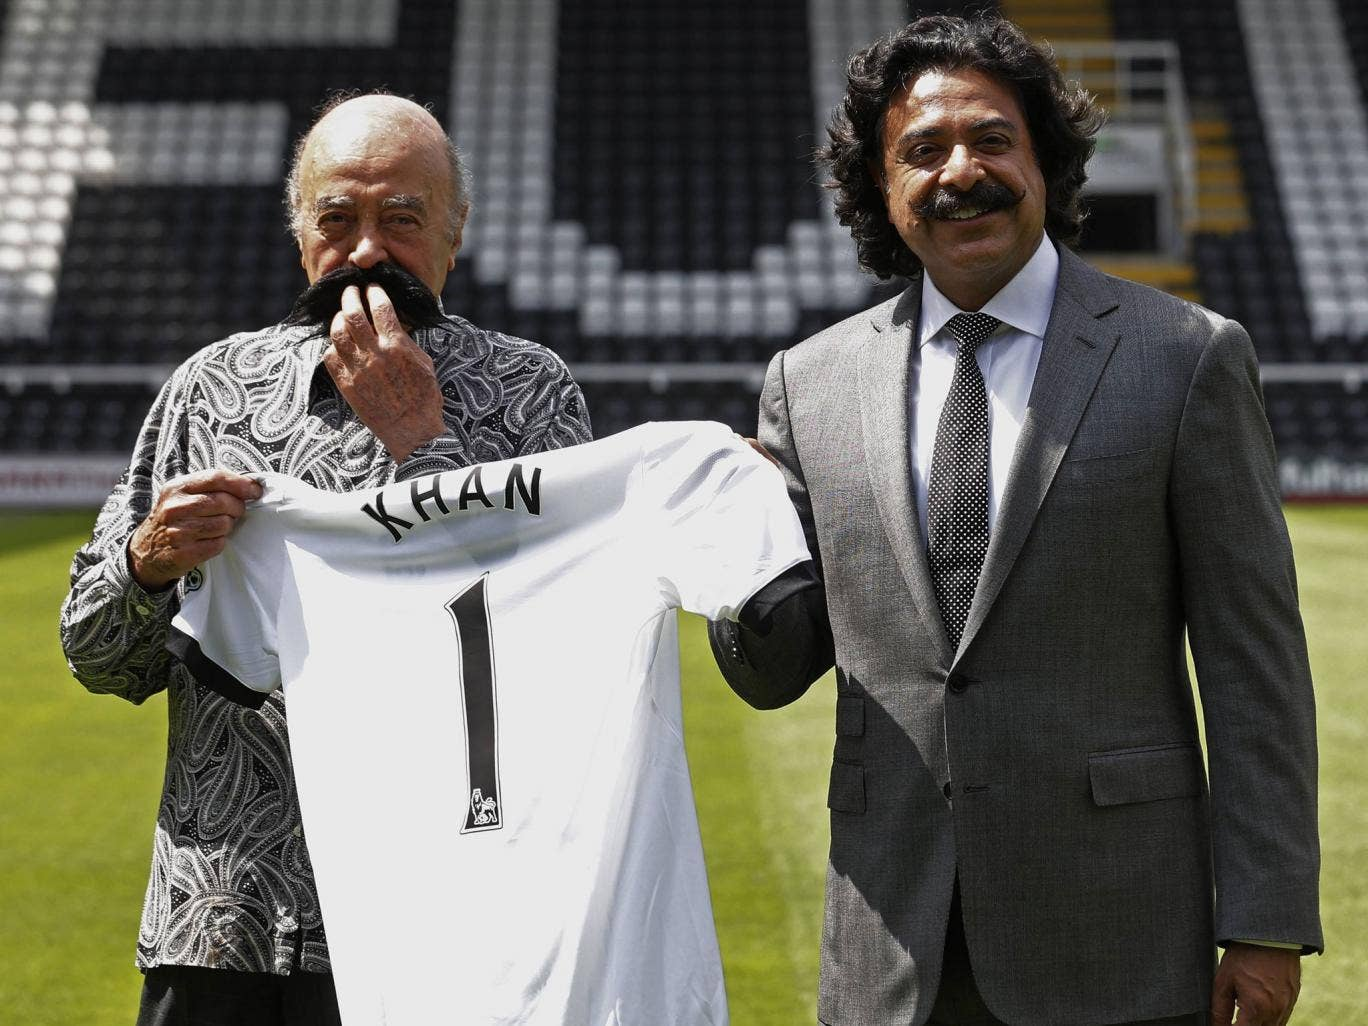 Lip service: Mohamed Al Fayed (left) welcomes new Fulham owner Shahid Khan to Craven Cottage